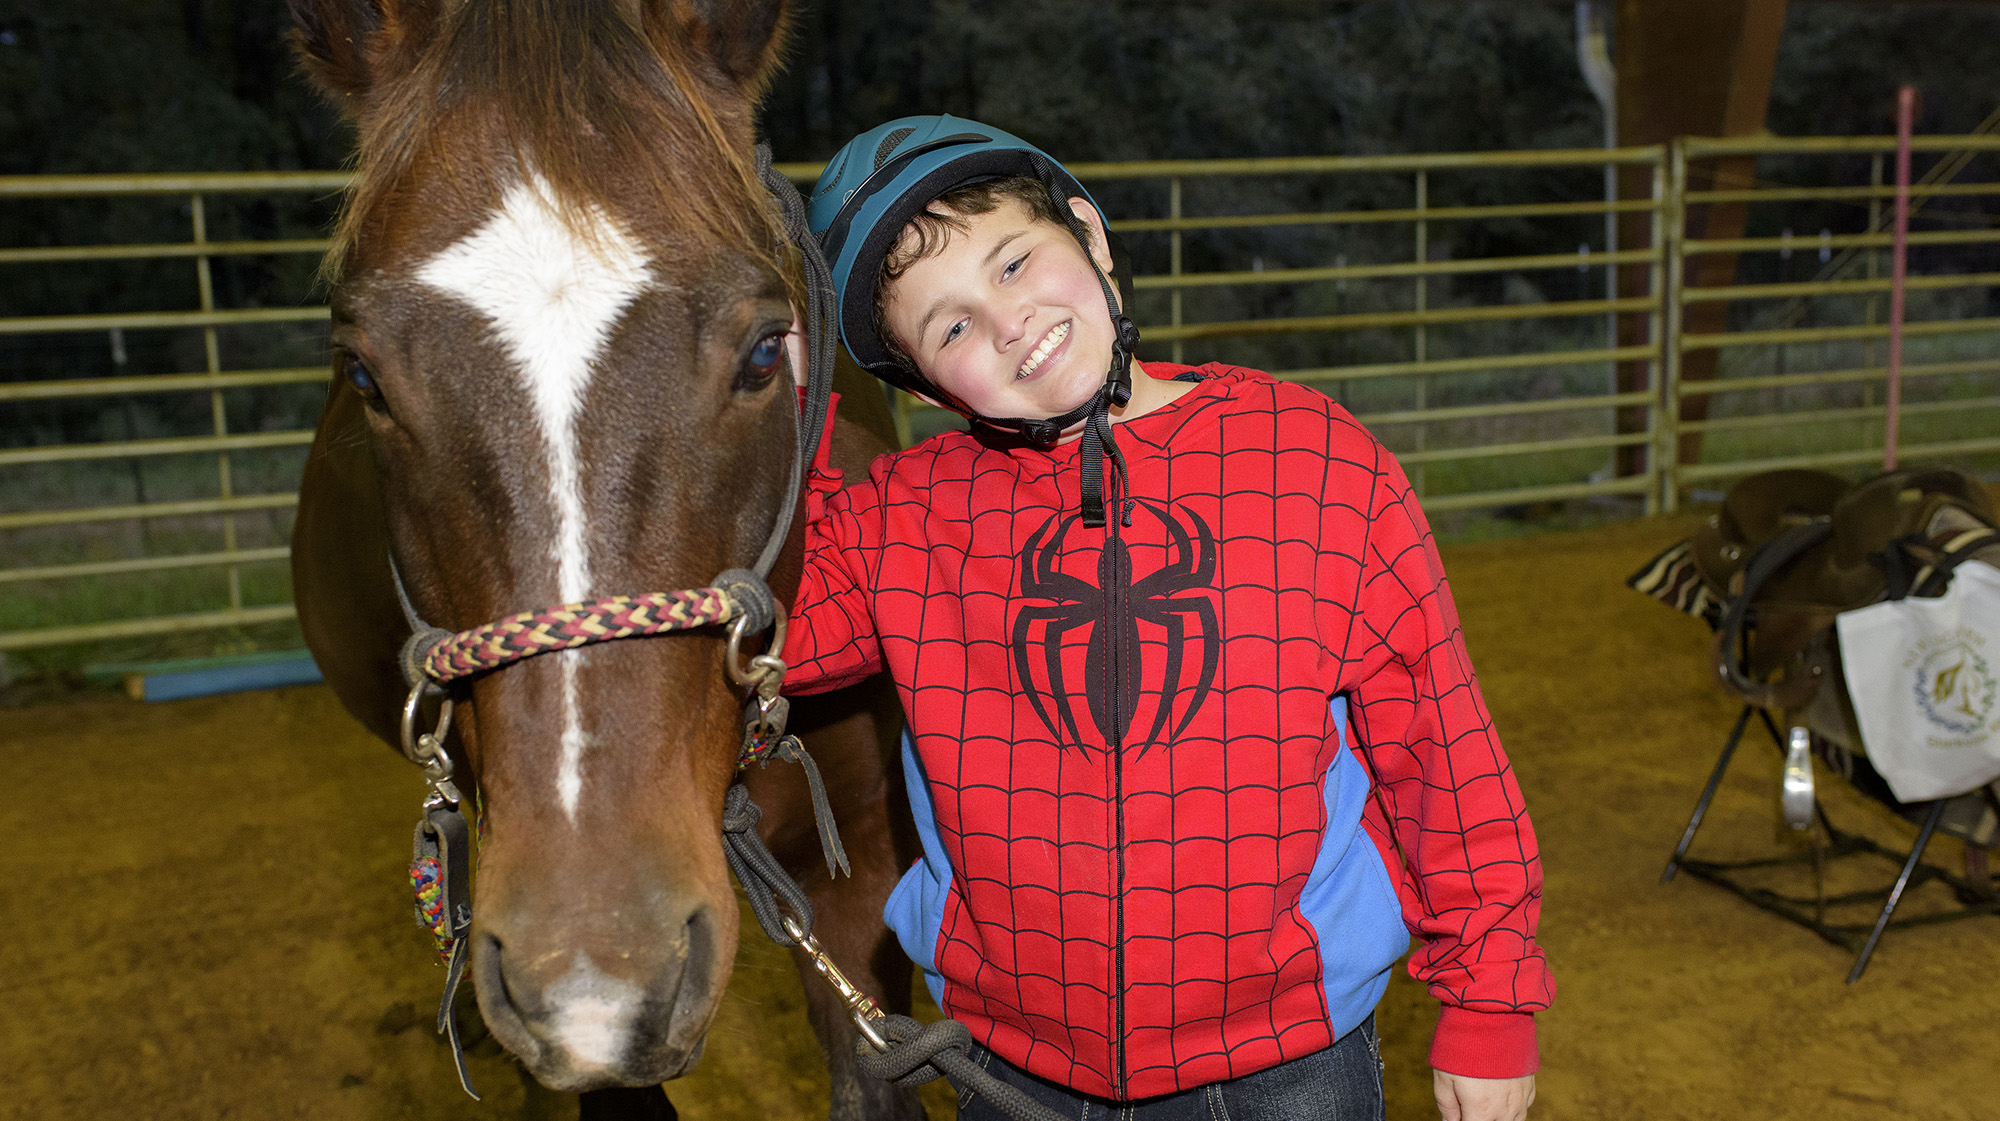 A young boy wearing a red Spiderman jacket and a blue helmet stands next to a brown and white horse.